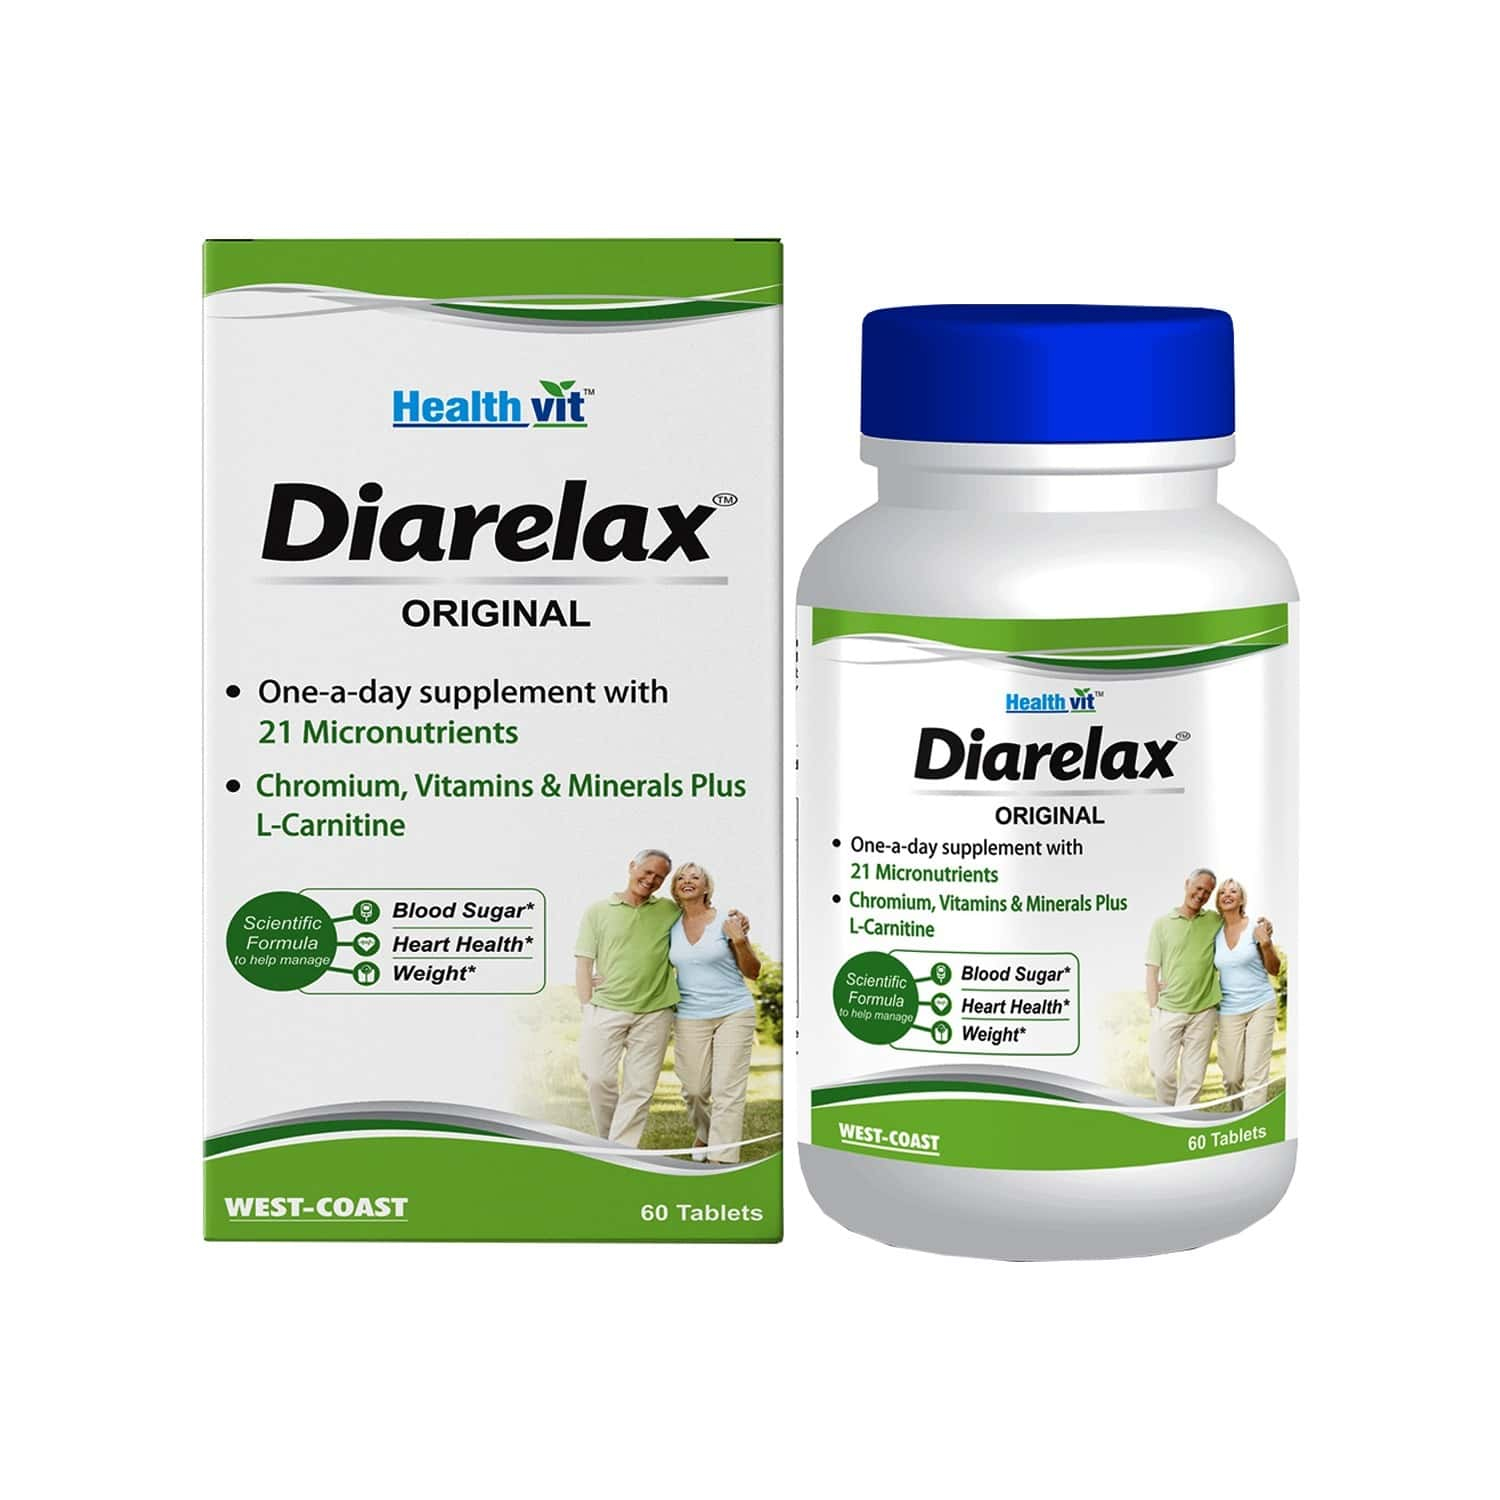 Healthvit Diarelax Diabetes Care Supplement Supports Healthy Blood Glucose Levels -60 Tablets